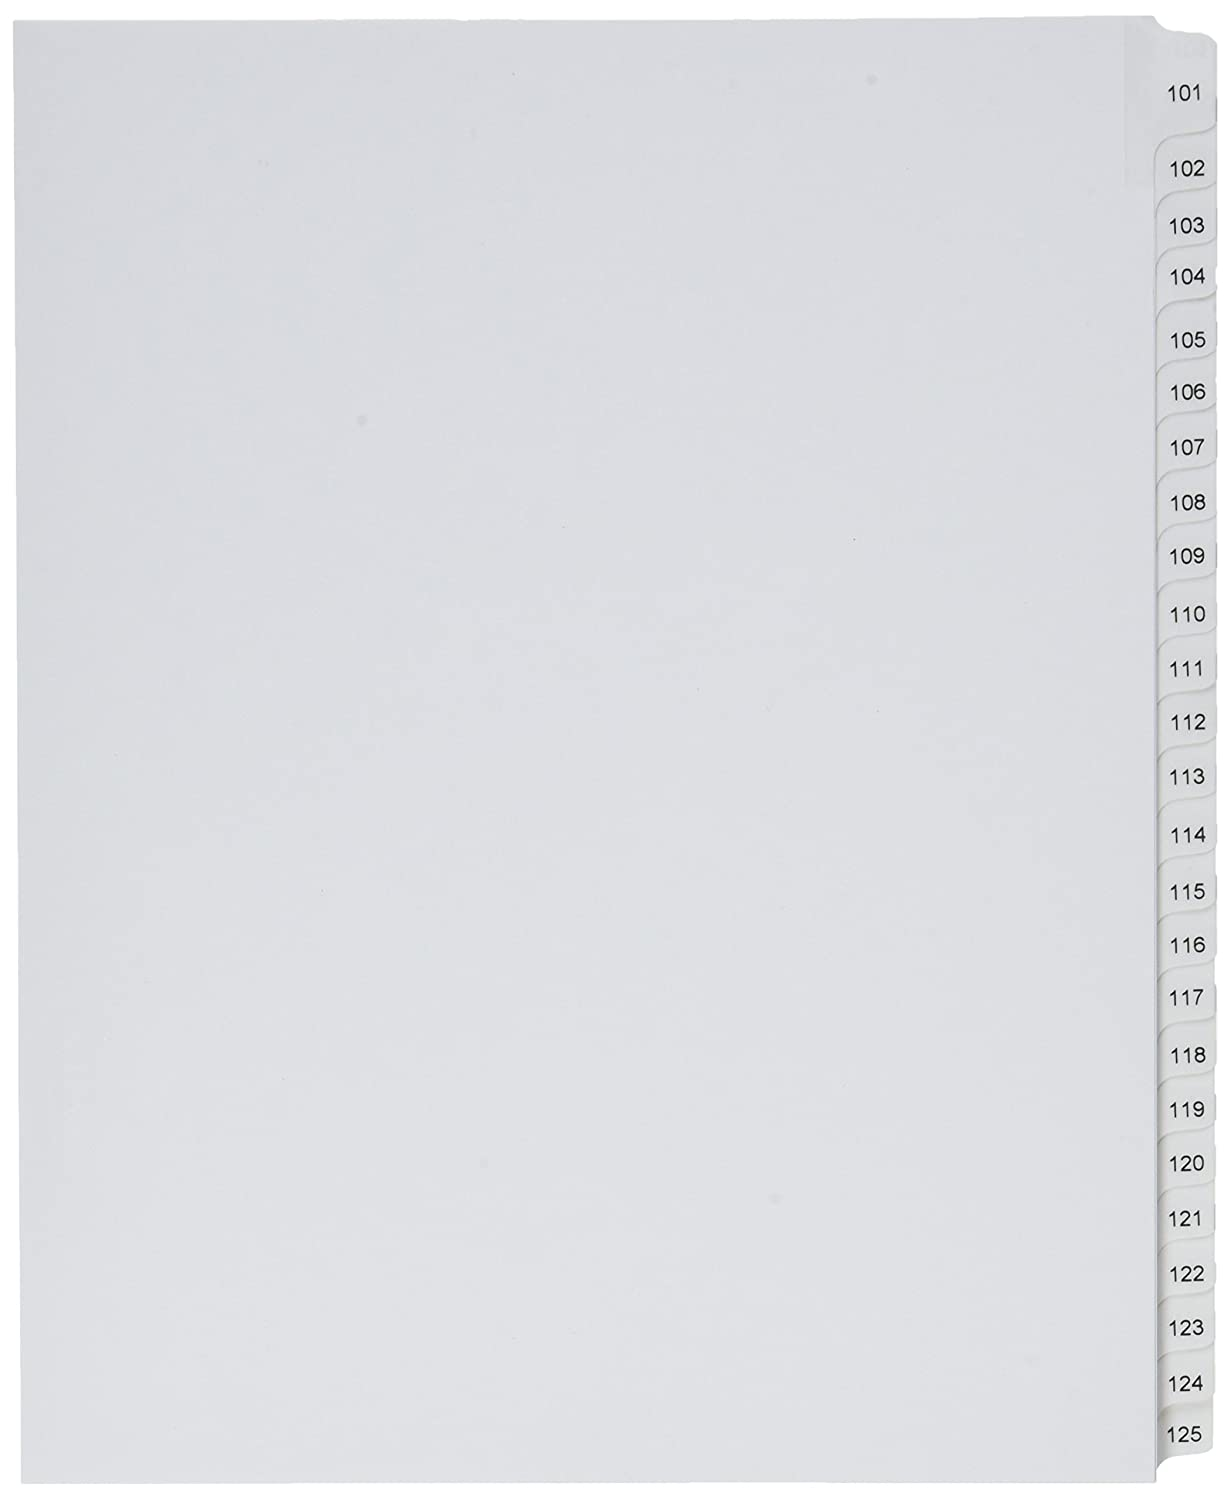 01705 White Avery Collated Legal Dividers Allstate 1 Set Letter Size Tabs 101-125